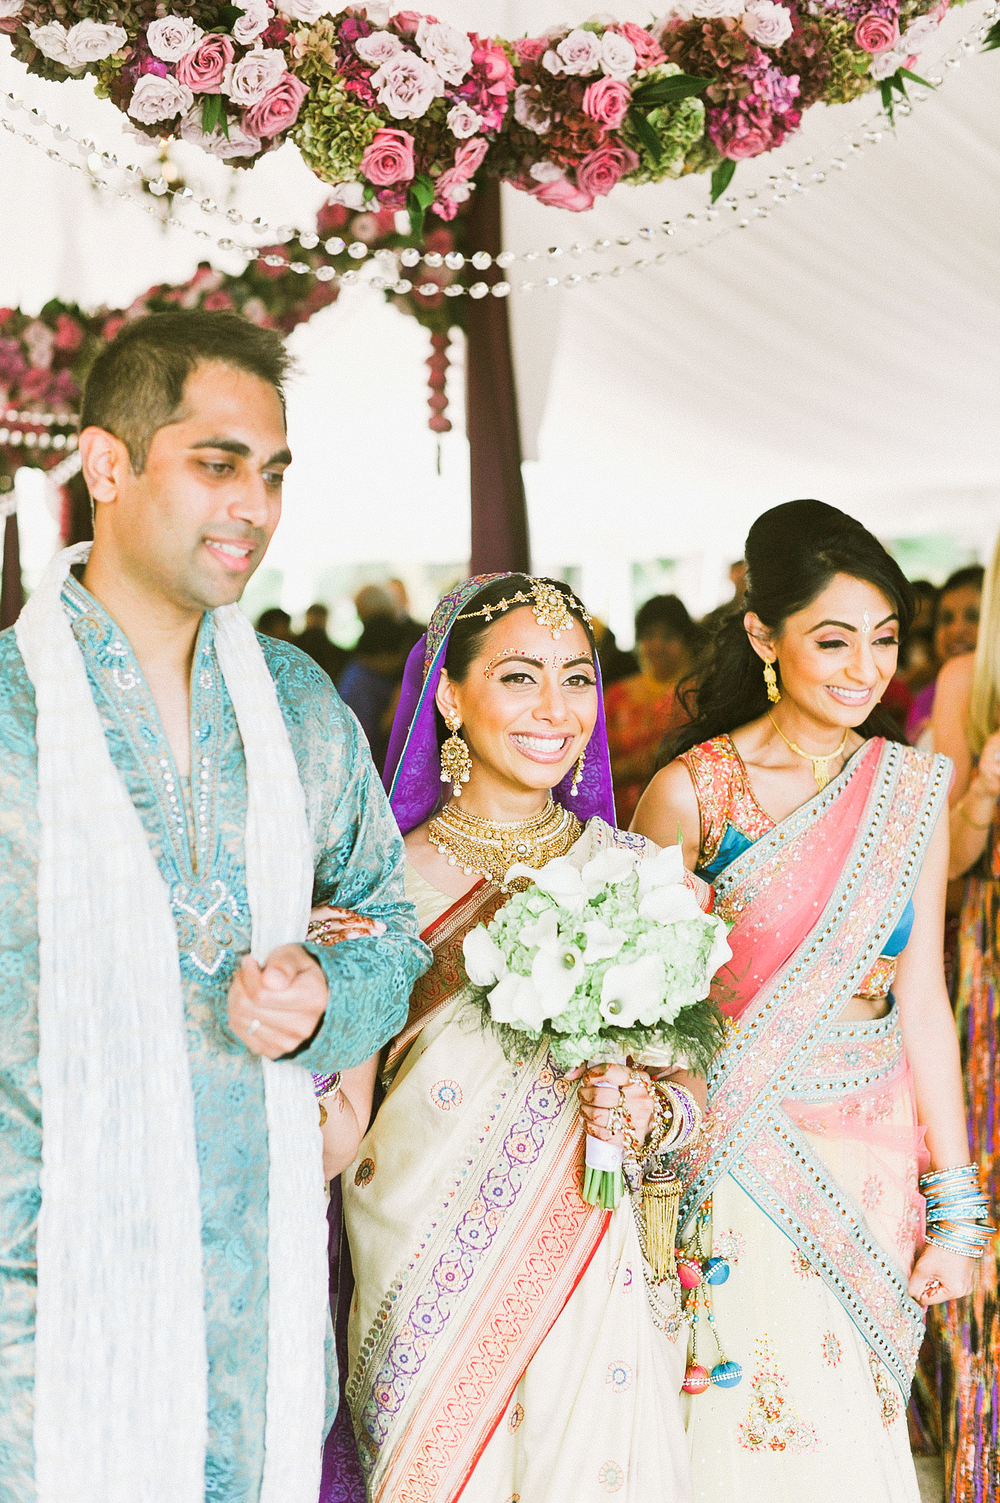 indian bride is escorted down the aisle by her brother and sister for this Indian Wedding in Florida photographed by Destination Wedding Photographer, LExia Frank - a top indian wedding photographer - who shoots film for luxury indian weddings preferring the soft skin tones and vibrant colors for indian weddings in india and worldwide